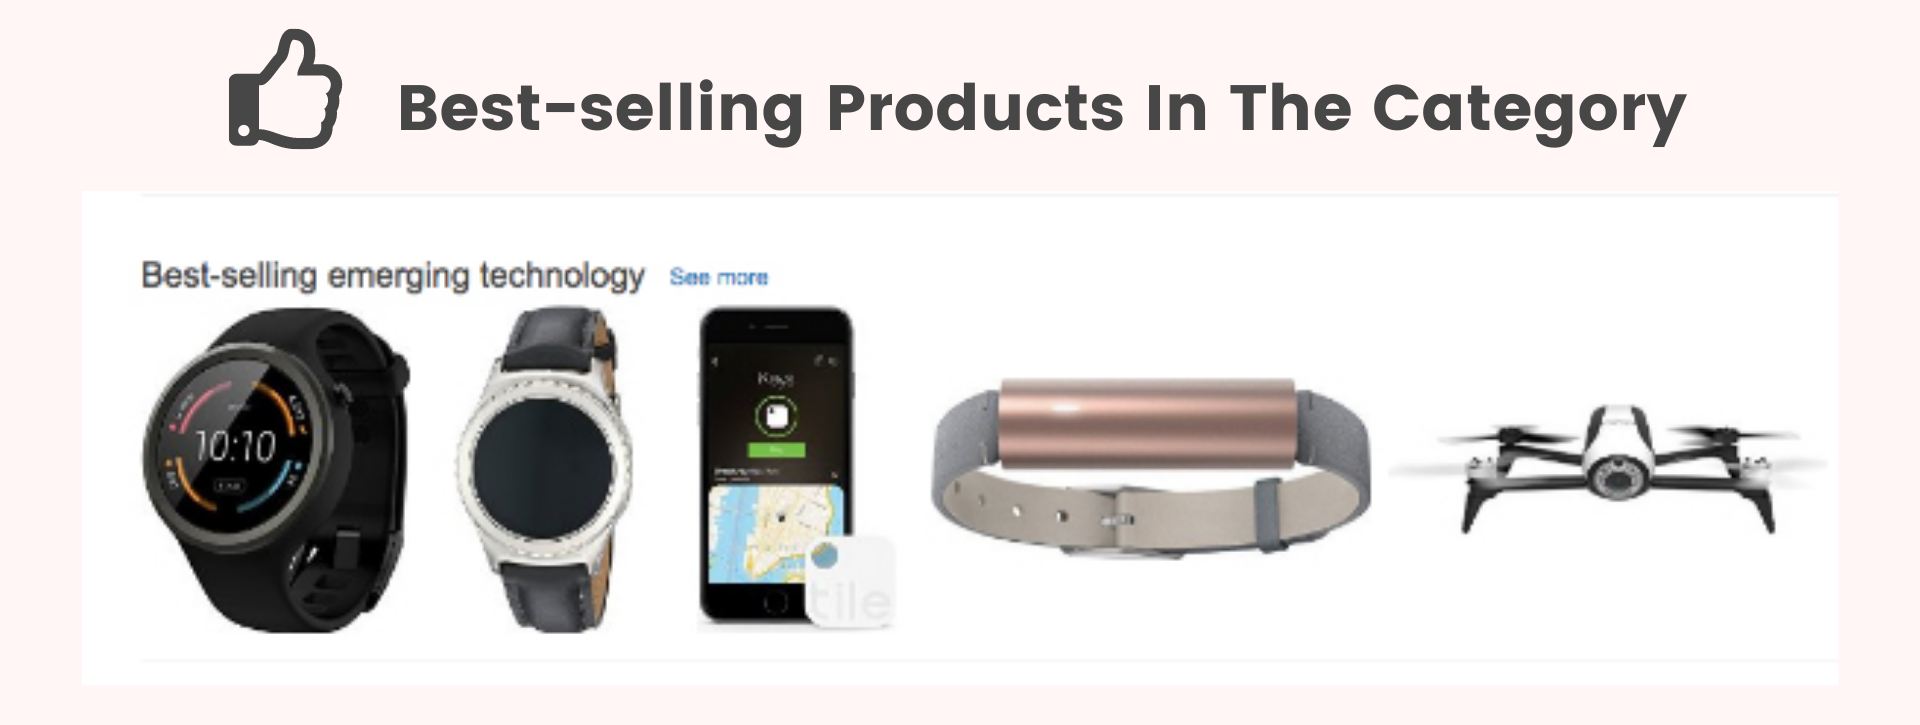 Amazon best-selling products